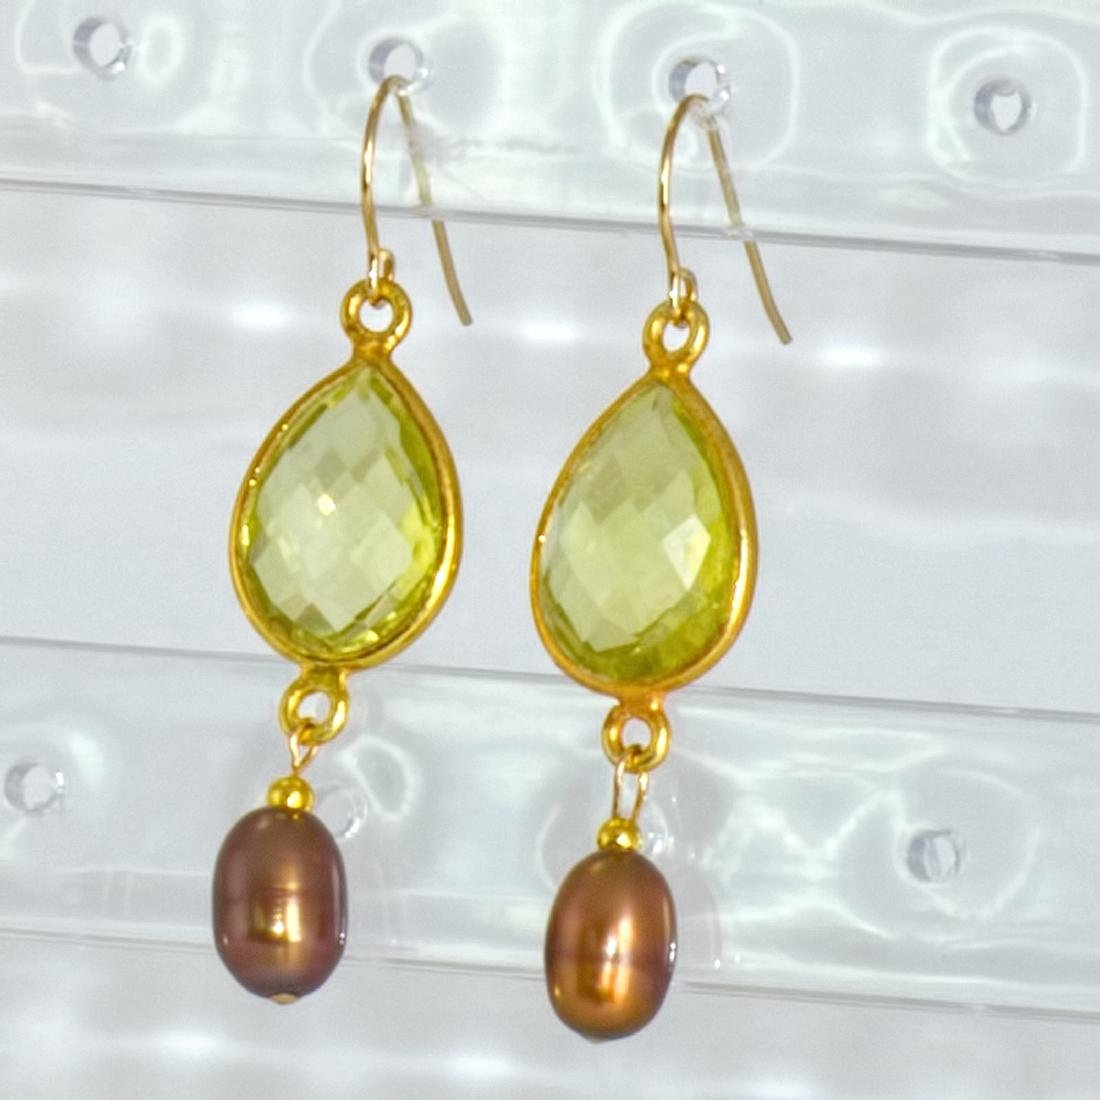 14kt Gold Earrings with Golden Pearls and 'Oro Verde'